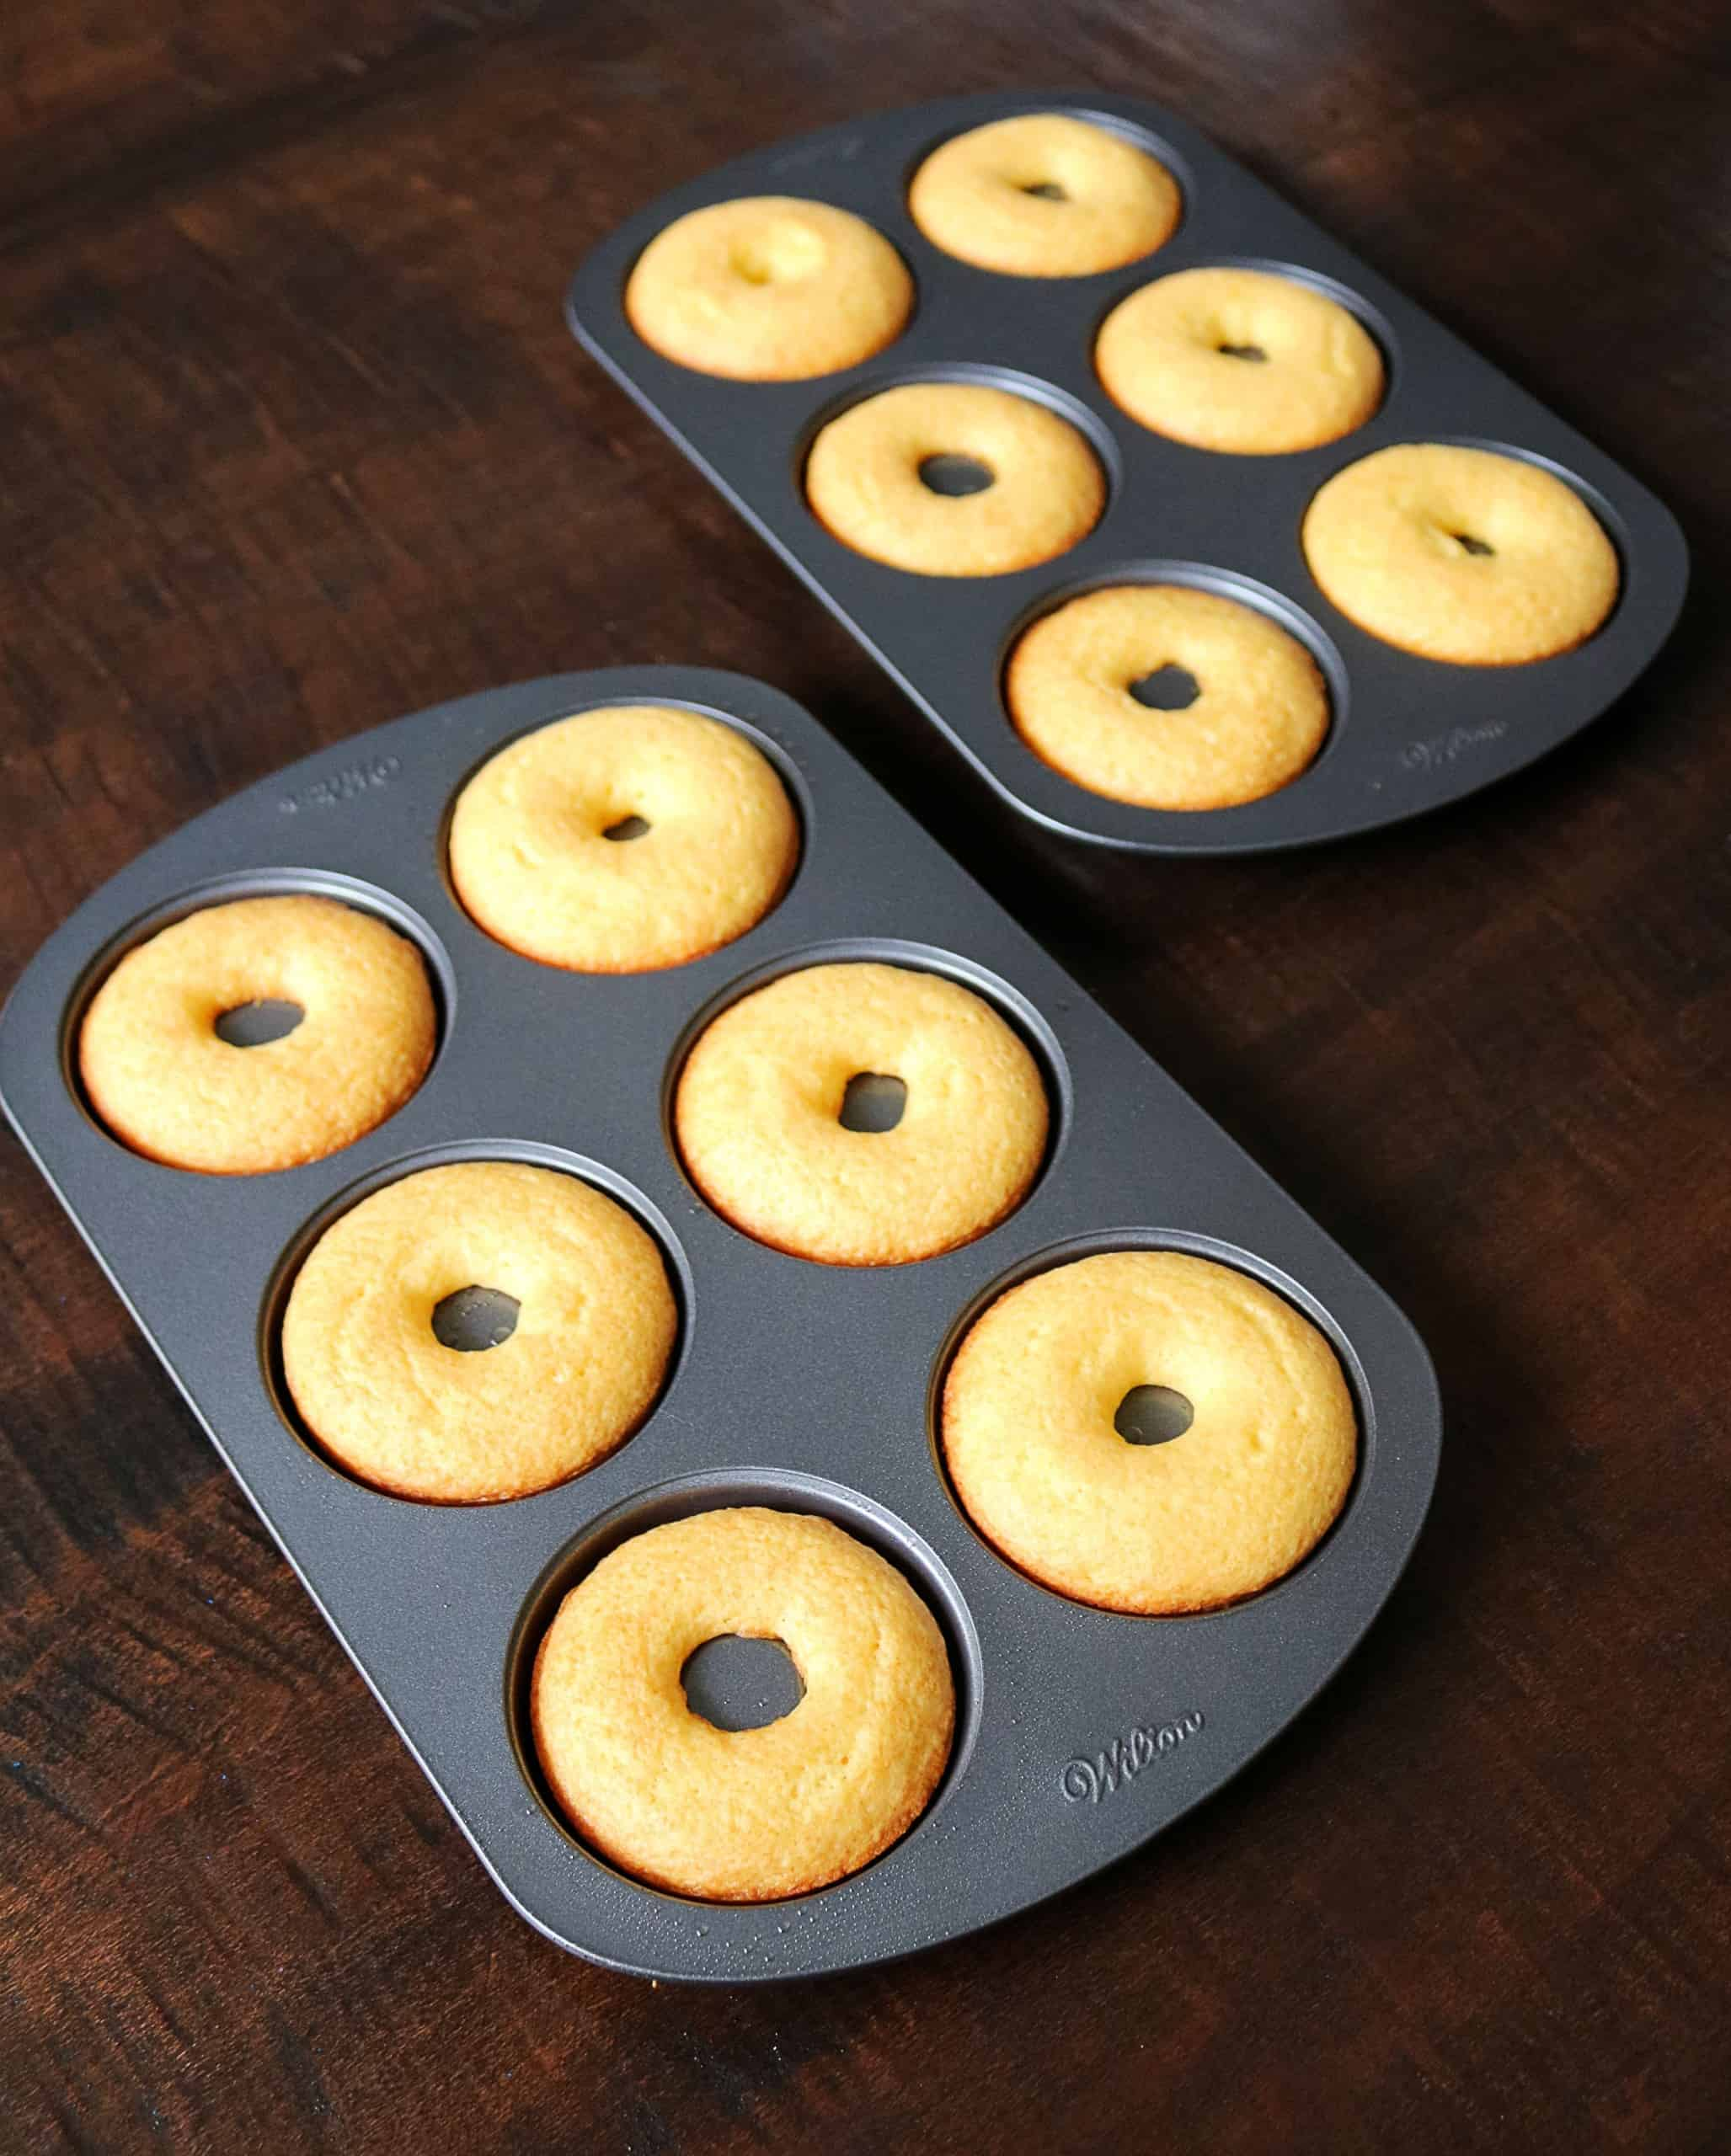 These Easy Cake Mix Donuts are delicious and so simple to make! These yellow cake mix donuts are made with a boxed cake mix and baked instead of fried. Top them off with one of my delicious glazes including vanilla, chocolate, or maple, and decorate with fun sprinkles. Kids and adults will love them for breakfast or dessert! #donuts #cakemixdonuts #cakemix #dessert #breakfast